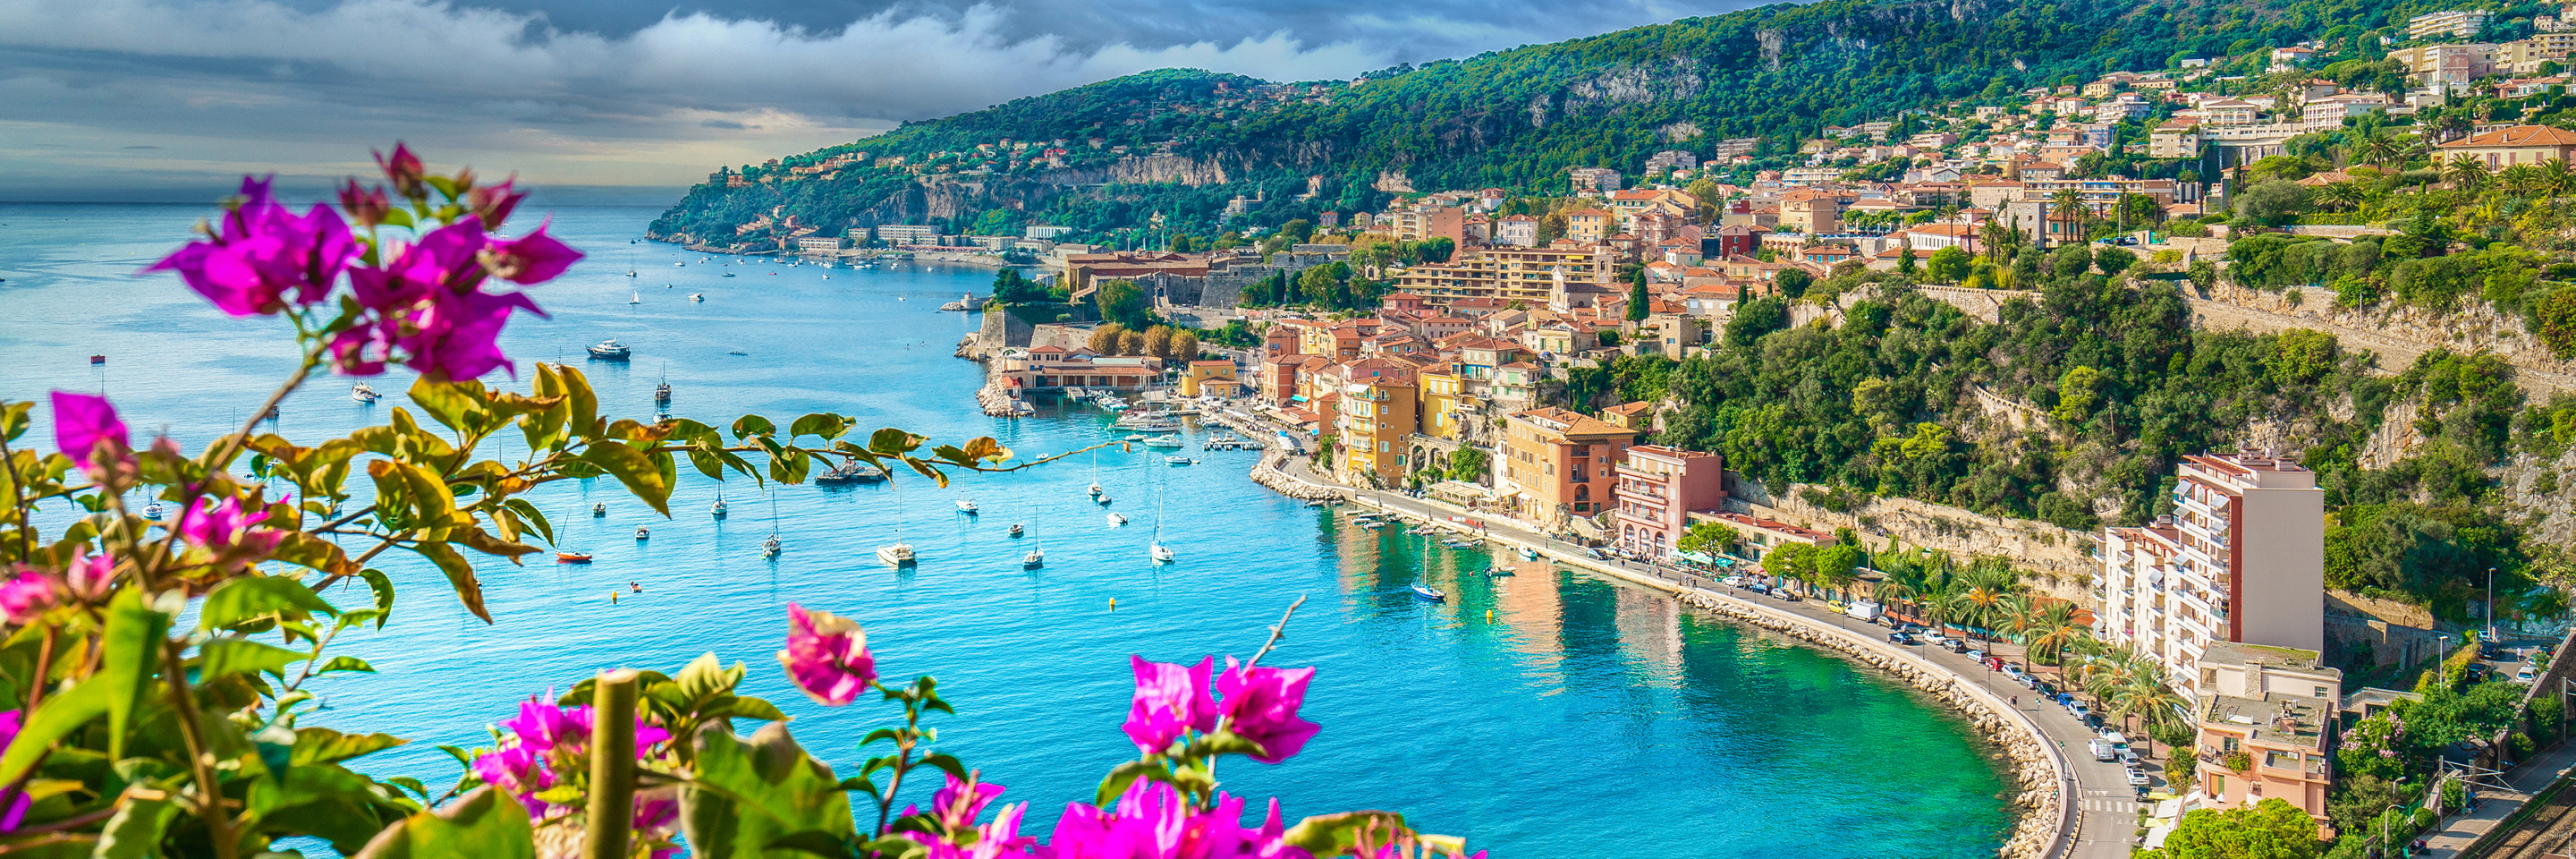 Burgundy & Provence with 2 Nights in Aix-en-Provence & 2 Nights in Nice (Southbound)